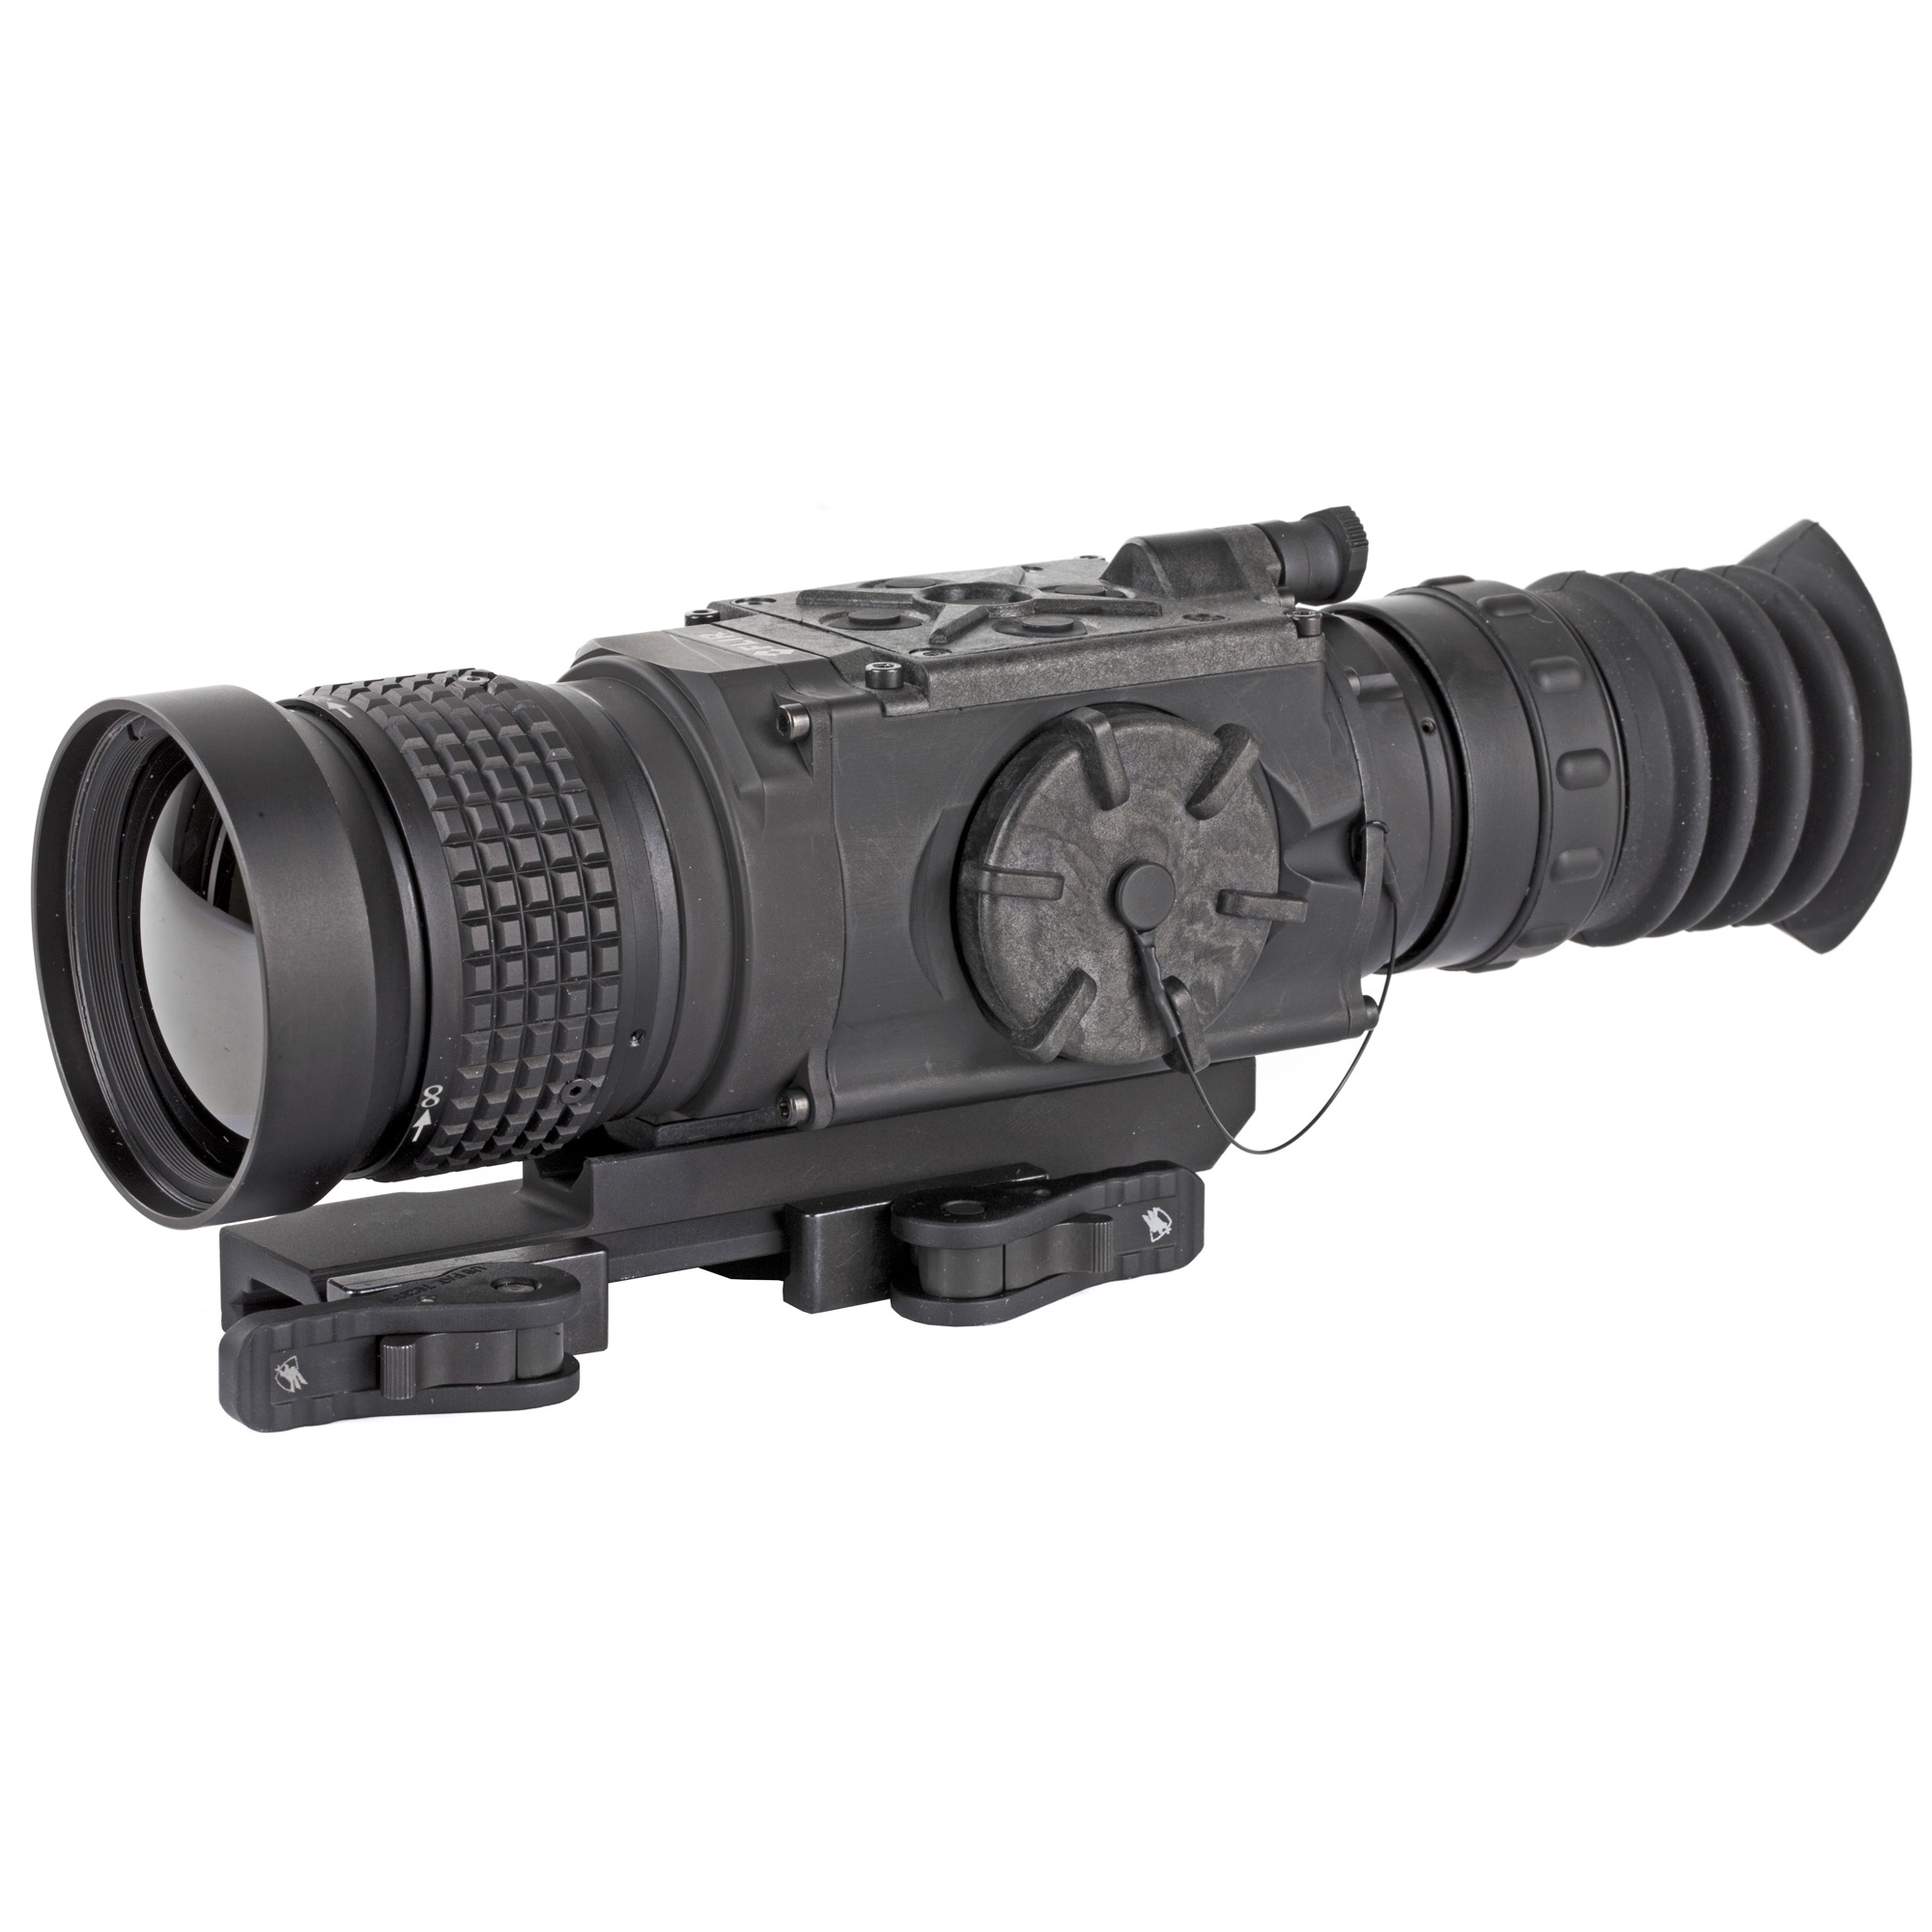 """Powered by the breakthrough FLIR Boson core"""" the ThermoSight Pro Series(R) PTS536 weapon sight sets the standard for thermal detection and classification. Featuring a 12 m pixel pitch sensor and 50mm lens"""" the PTS536 delivers brilliant"""" clean thermal imaging with a focused 4.5 degree x 3.5 degree field of view. The entire ThermoSight Pro Series offers an uncompressed video signal"""" a high definition display"""" and shot-activated video recording."""